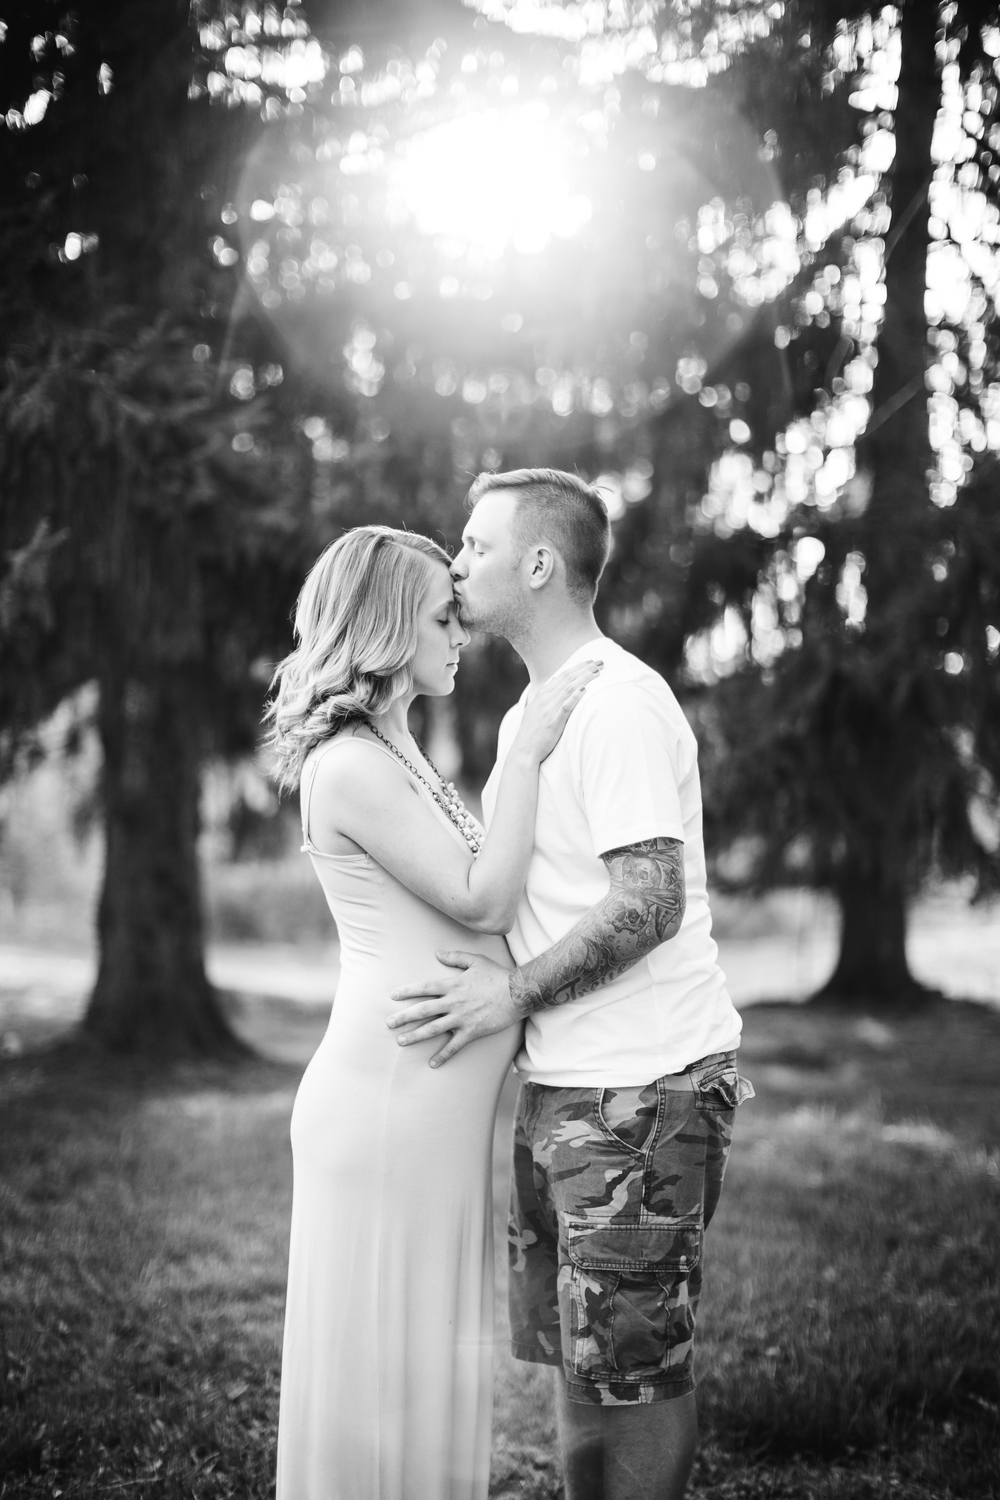 south_park_maternity_session_pittsburgh_photos-27.jpg